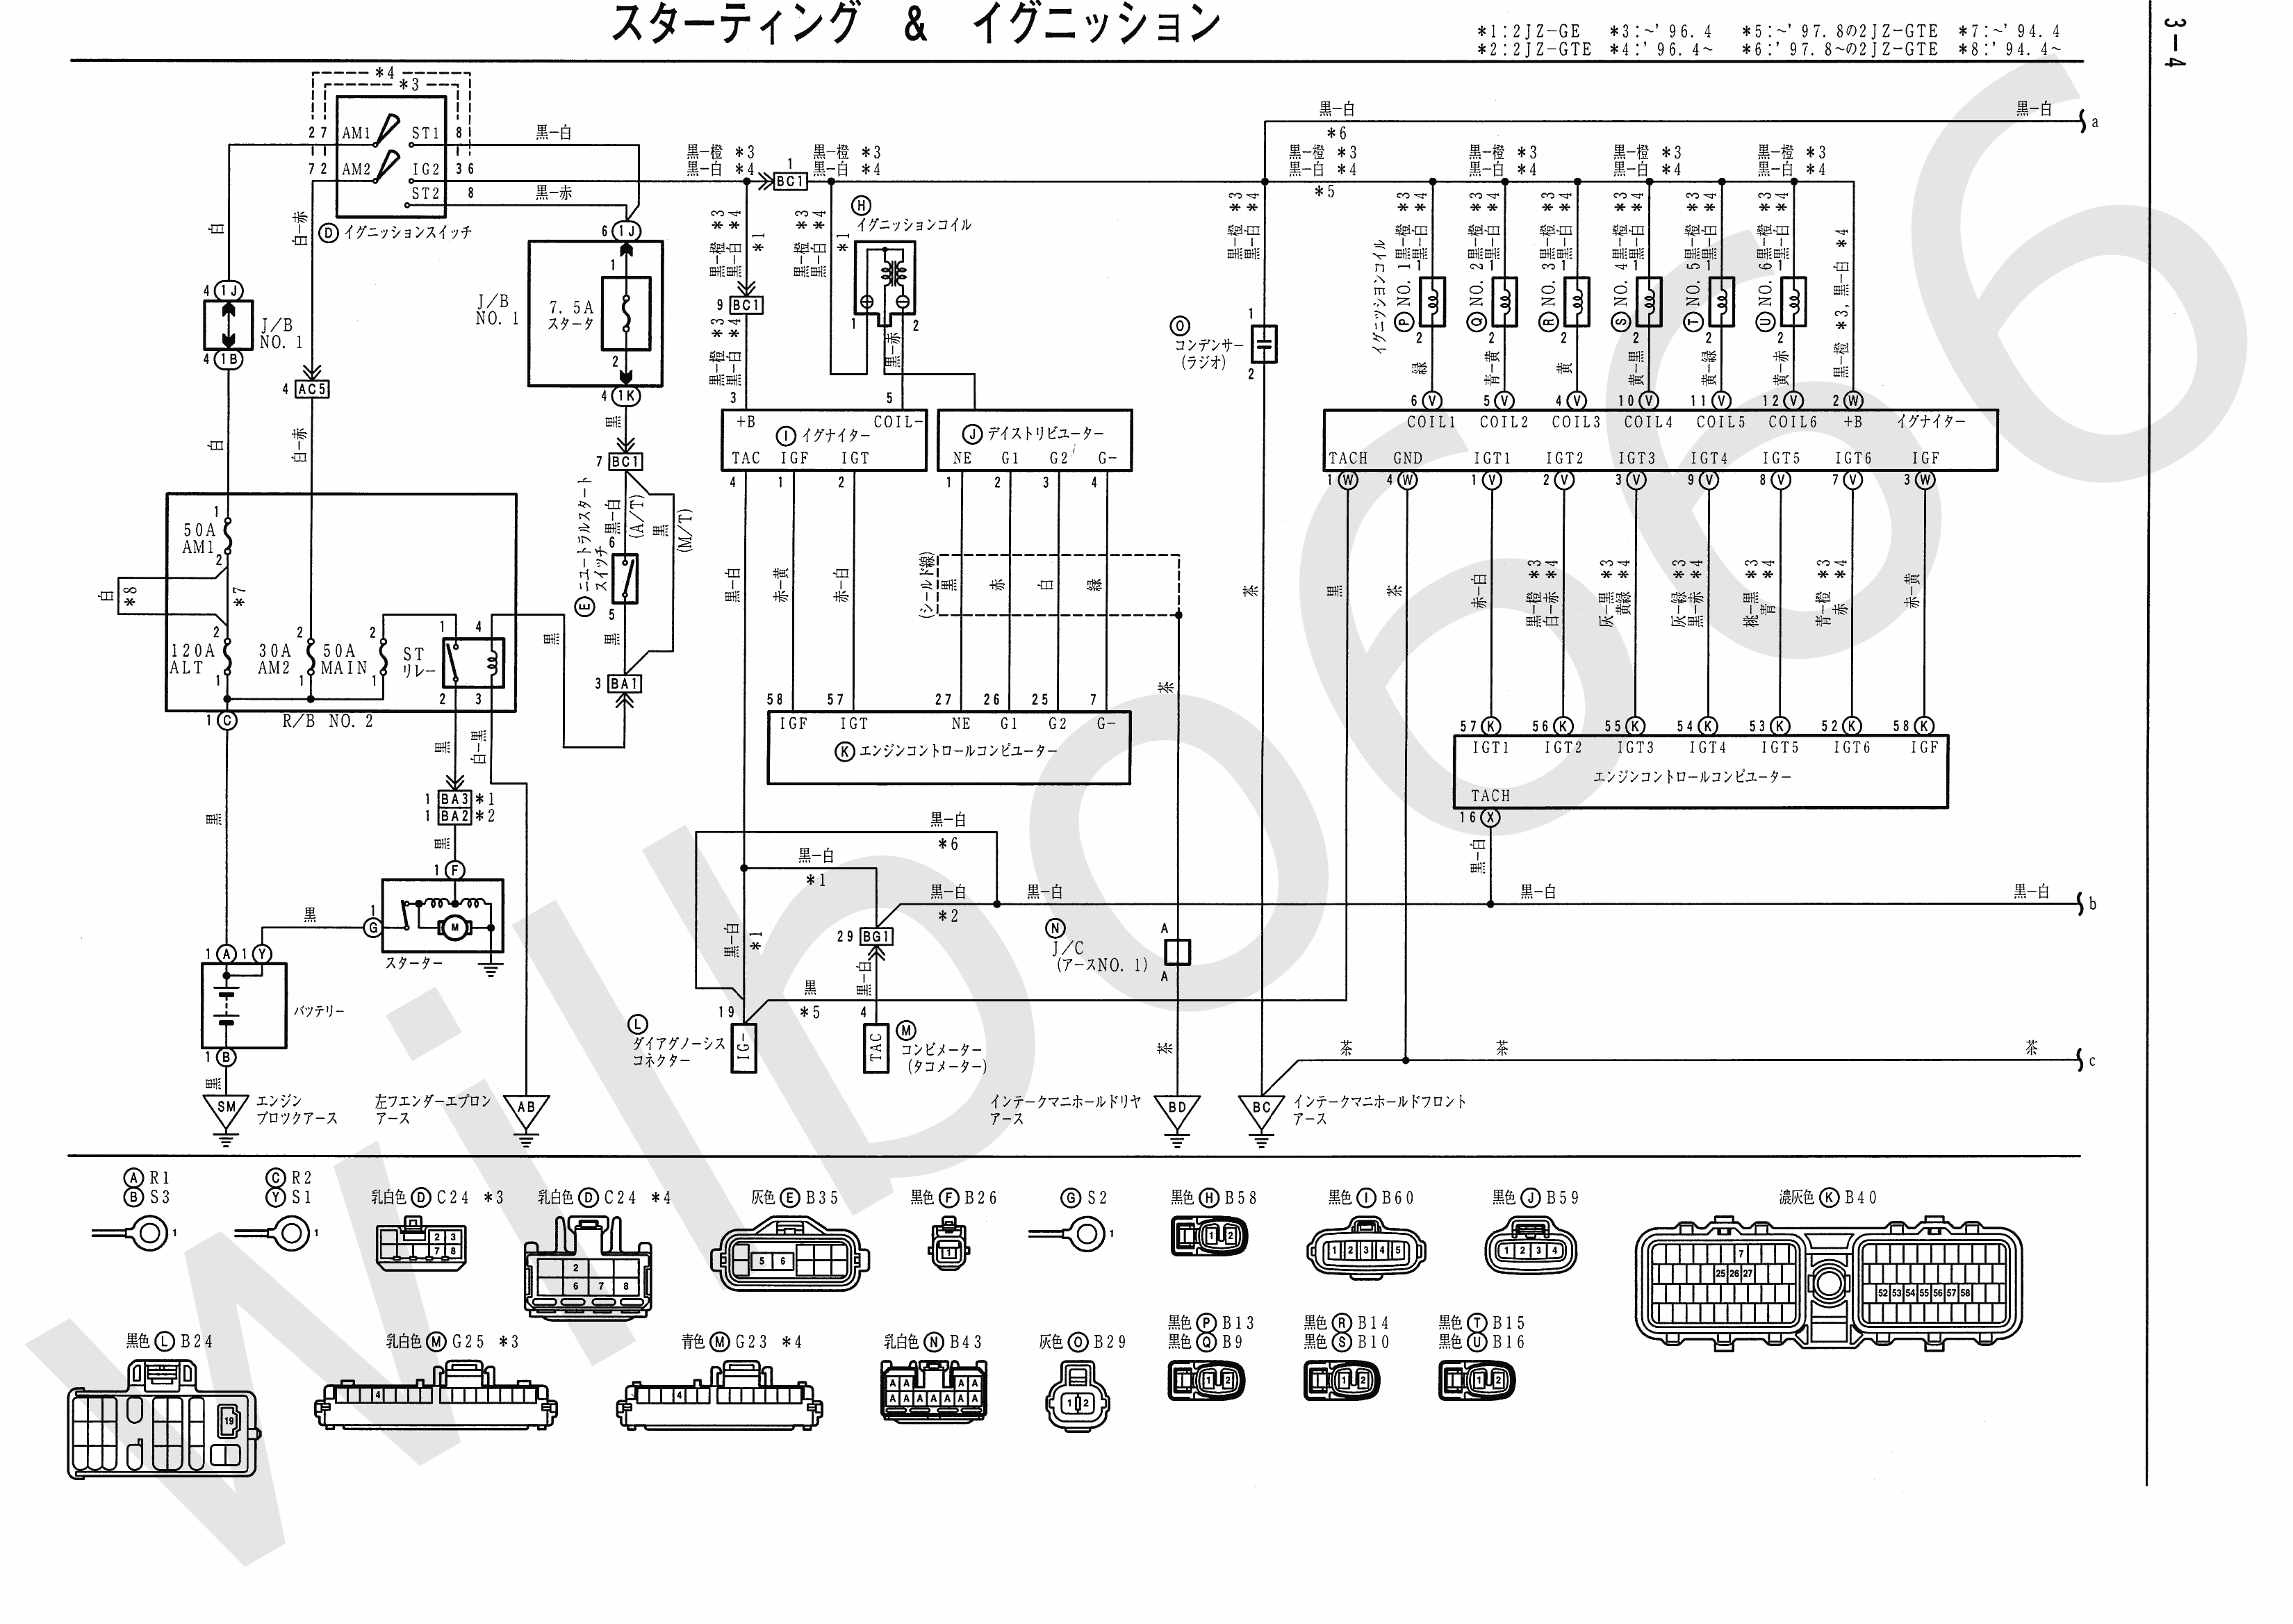 92 Lexus Sc300 Fuse Diagram Wiring Library Toyota Wire Harness Repair Jza80 Supra 2jz Ge Diagrams